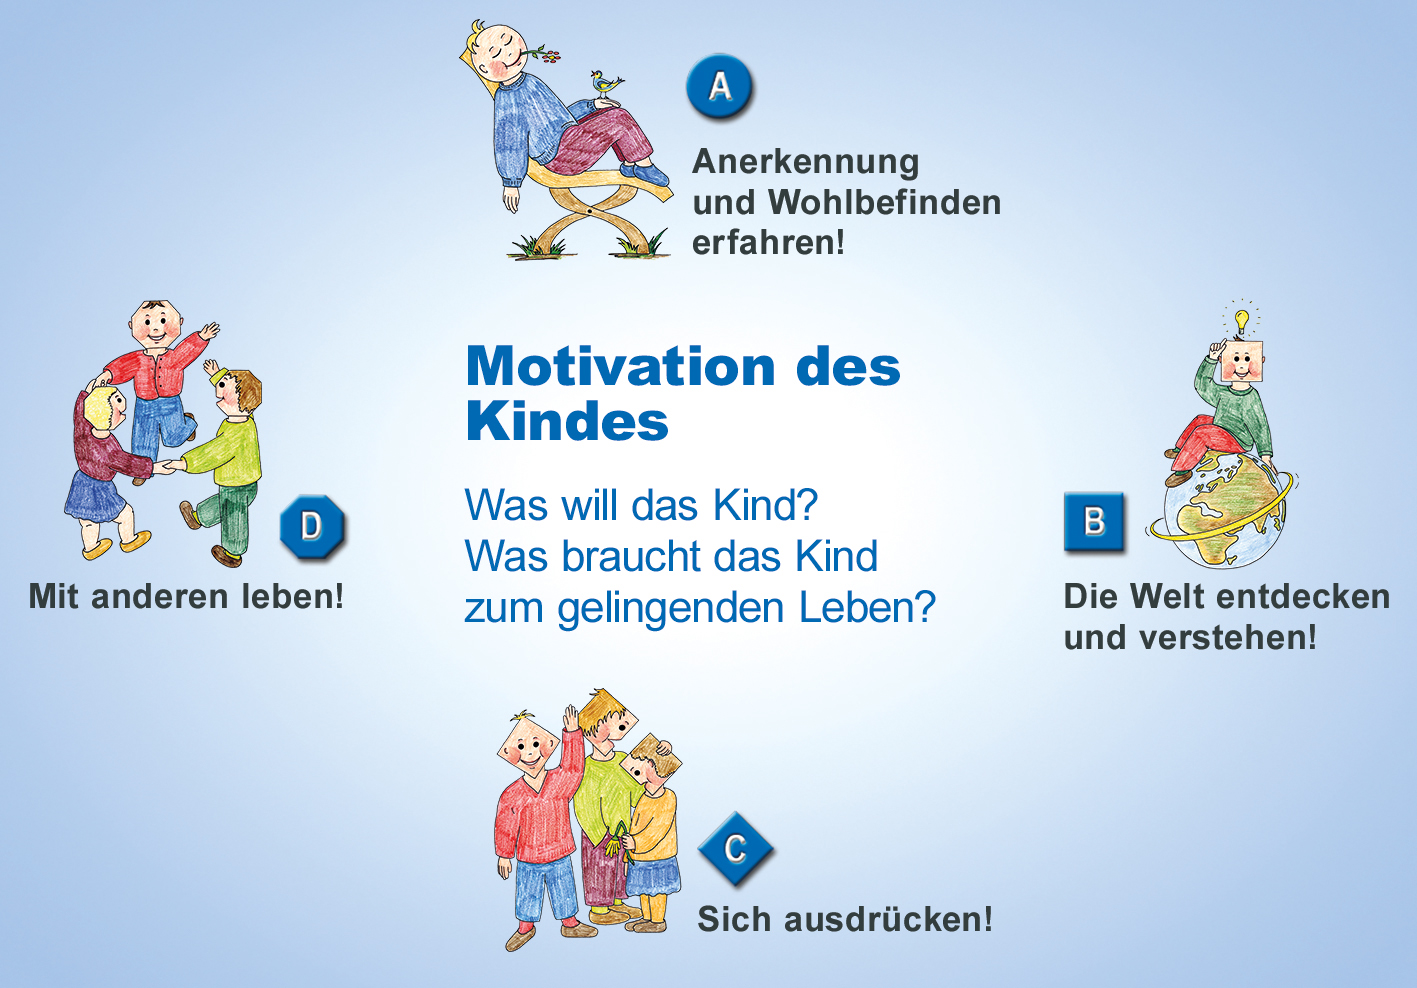 Von der Motivation des Kindes